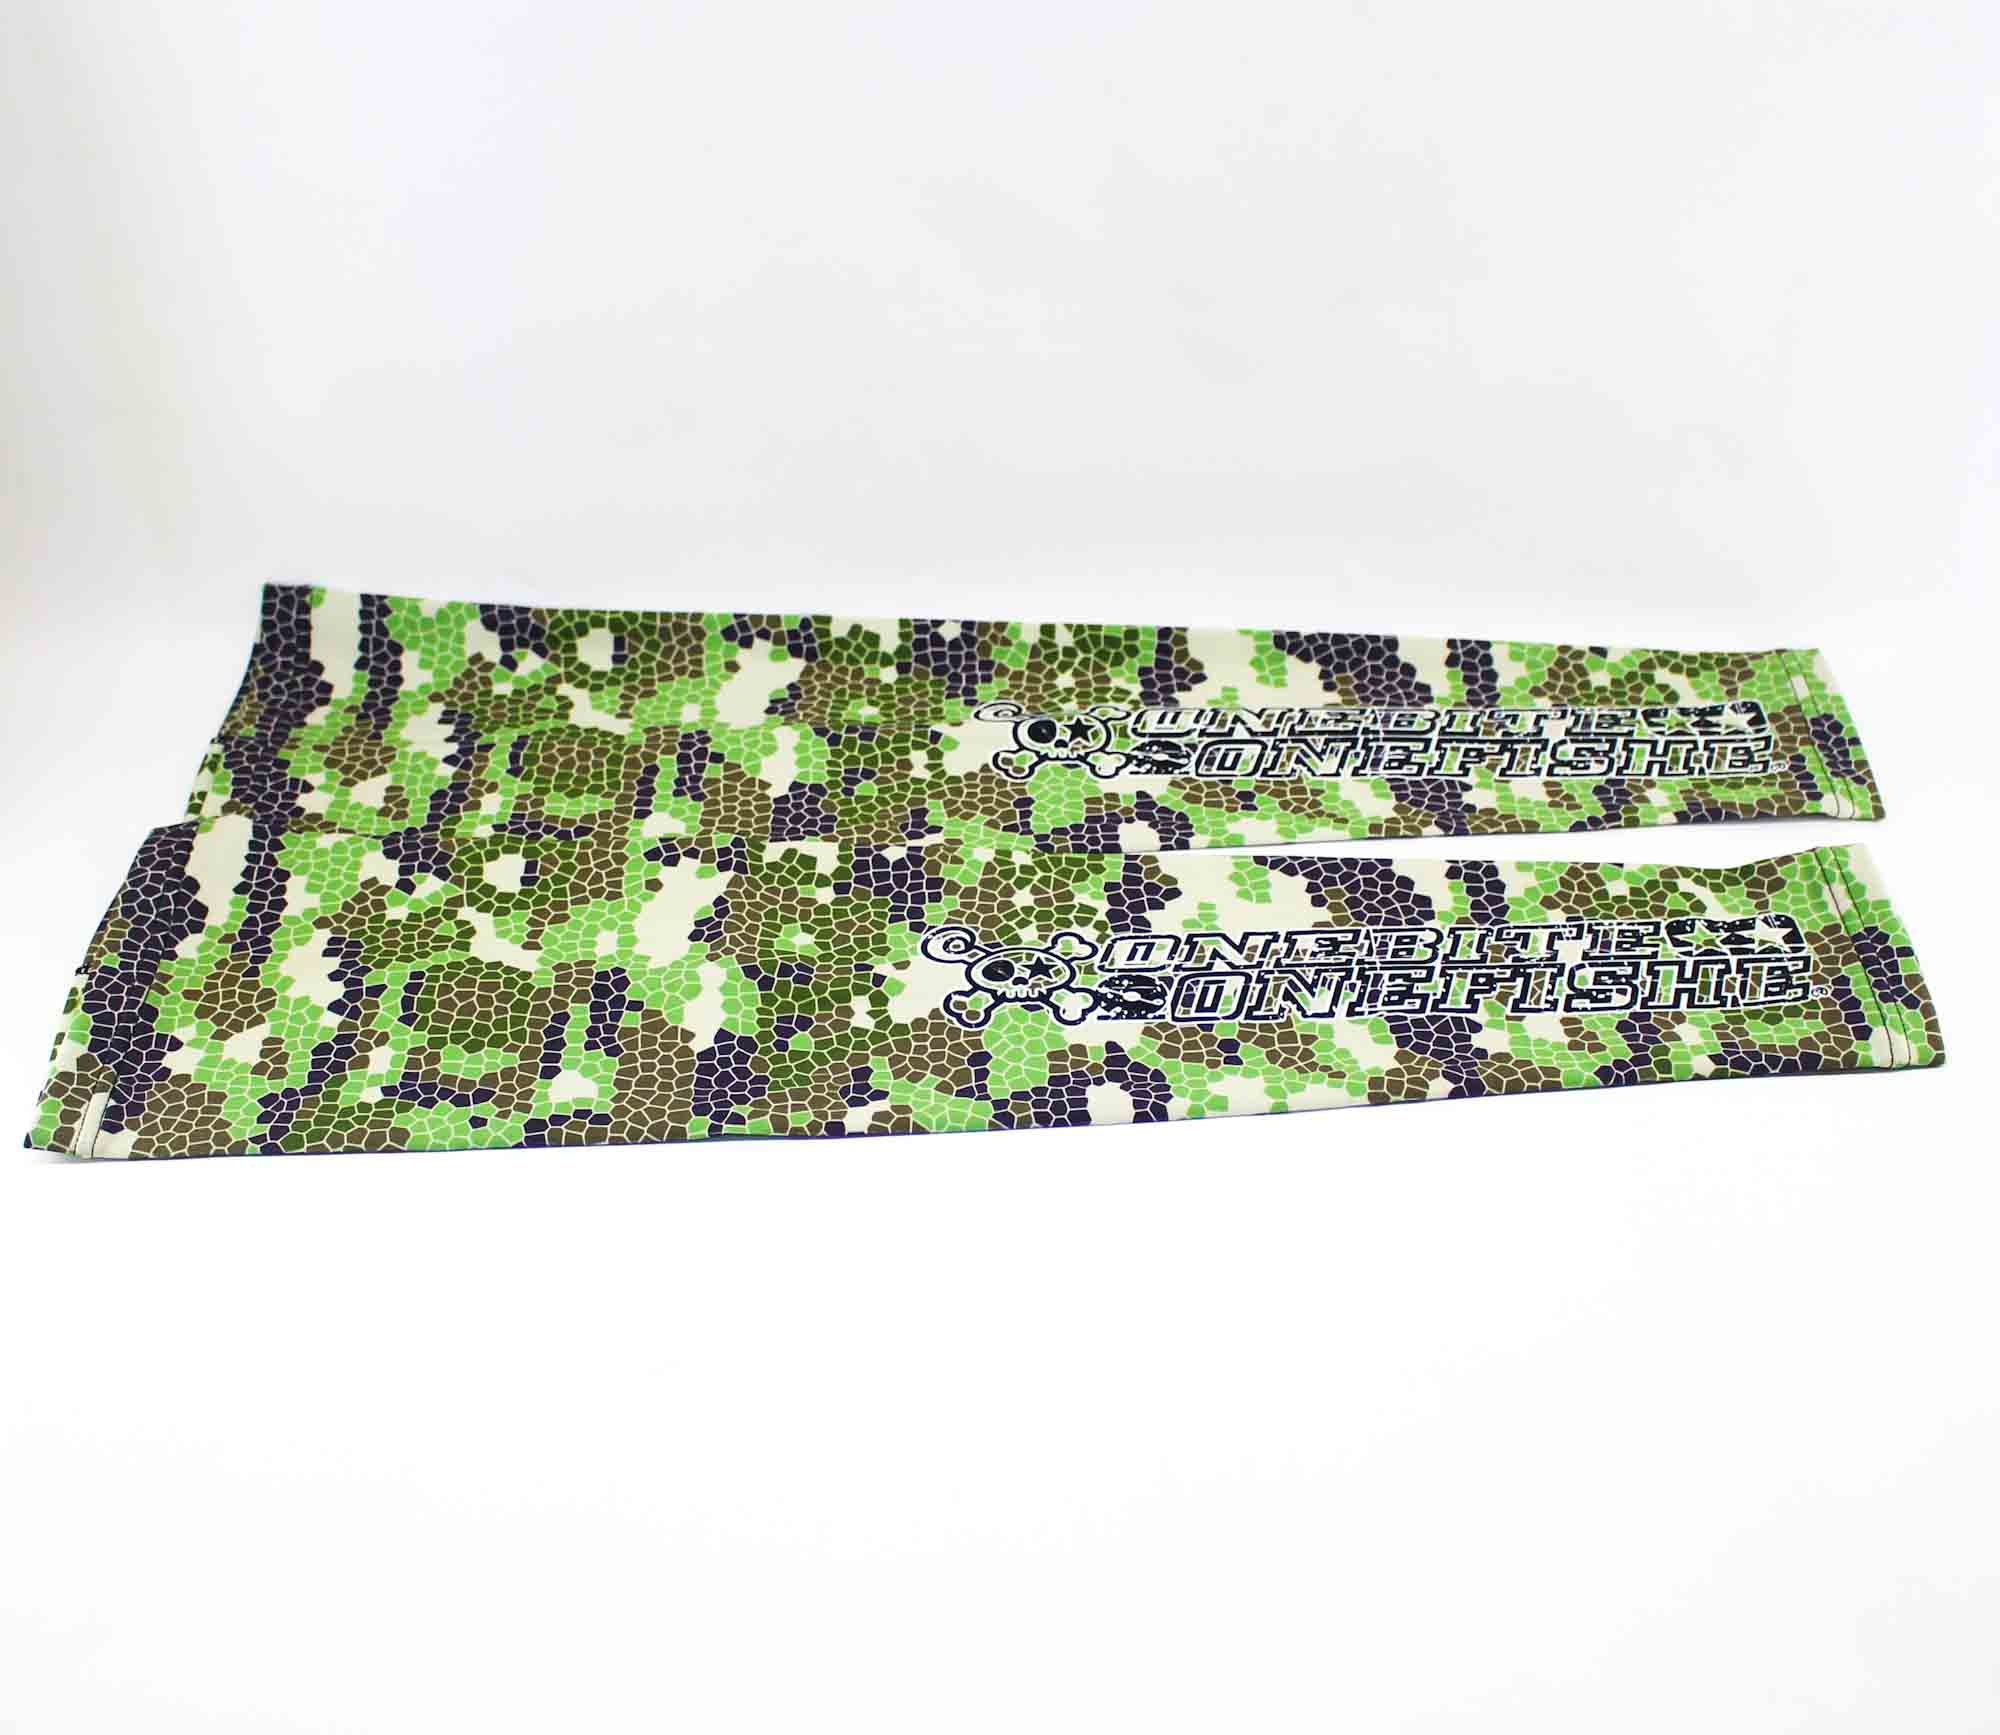 One Bite One Fish OBOF Arm Sleeves Green Camo (0184)